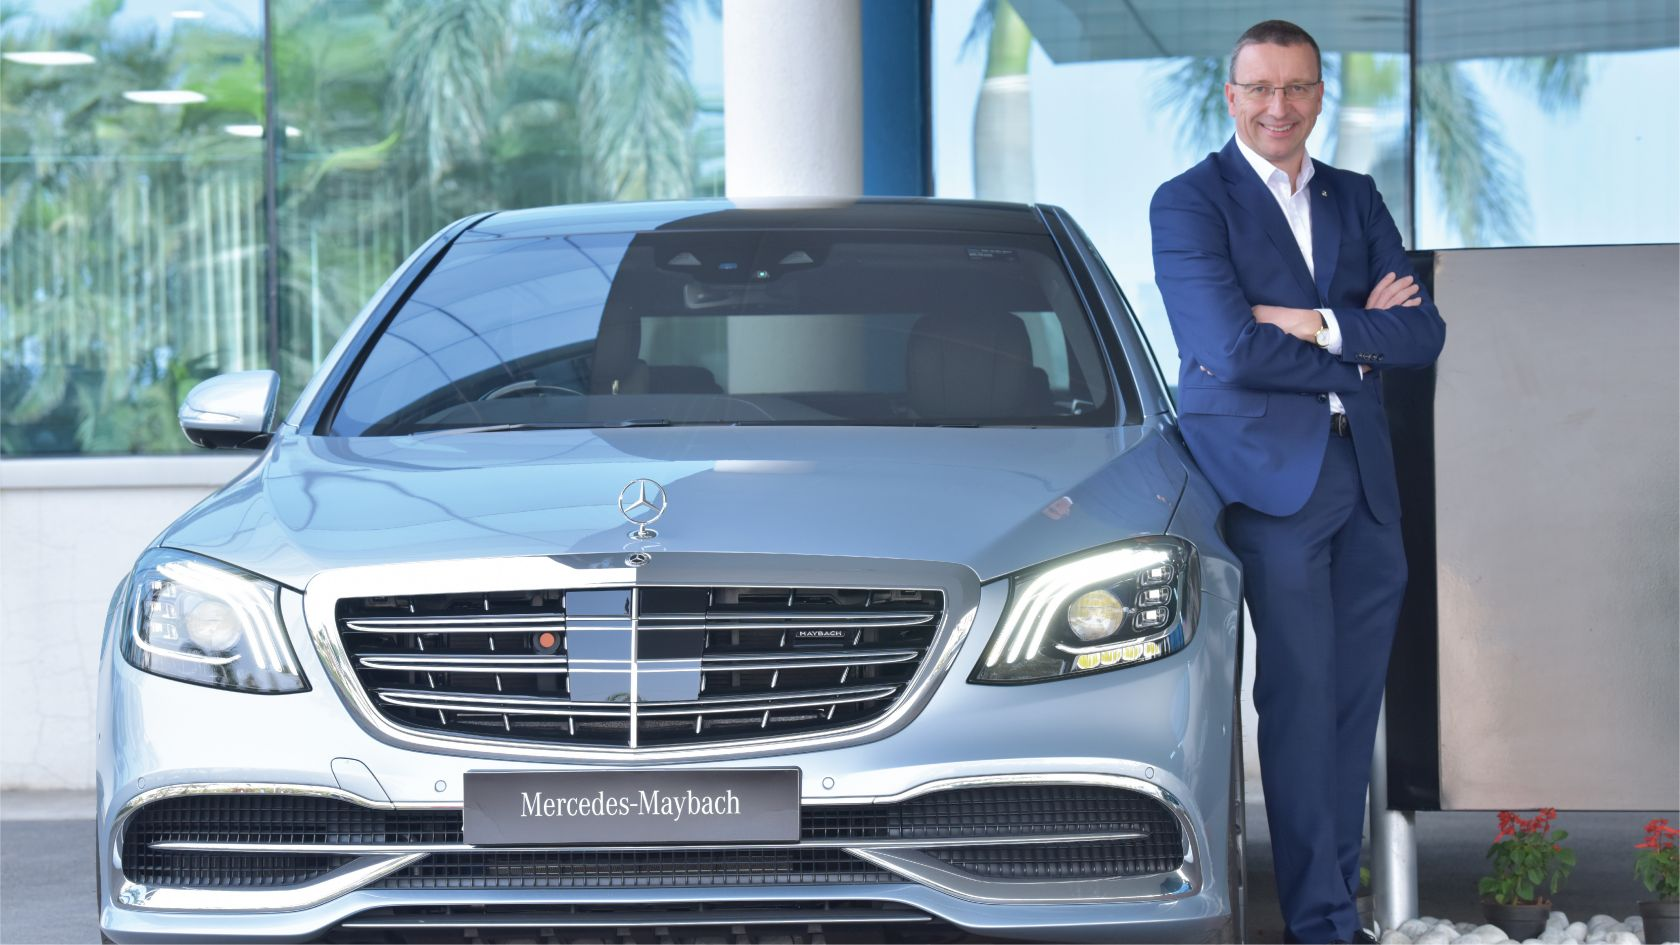 Mercedes Benz India Records Its Best Ever Sales In India Market In 2018 Mercedes